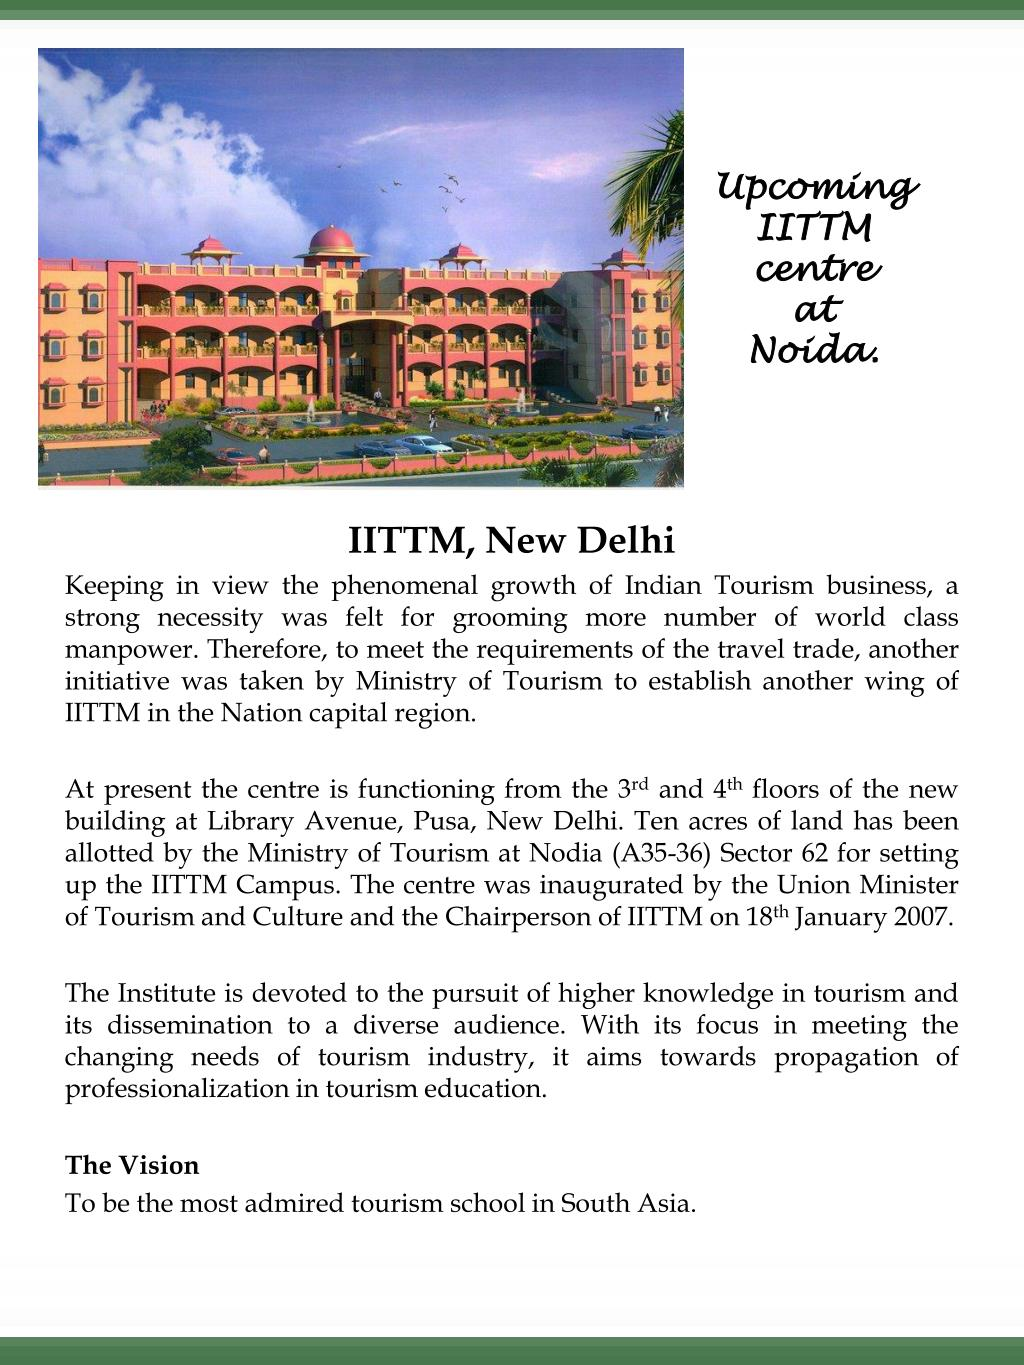 Upcoming IITTM centre